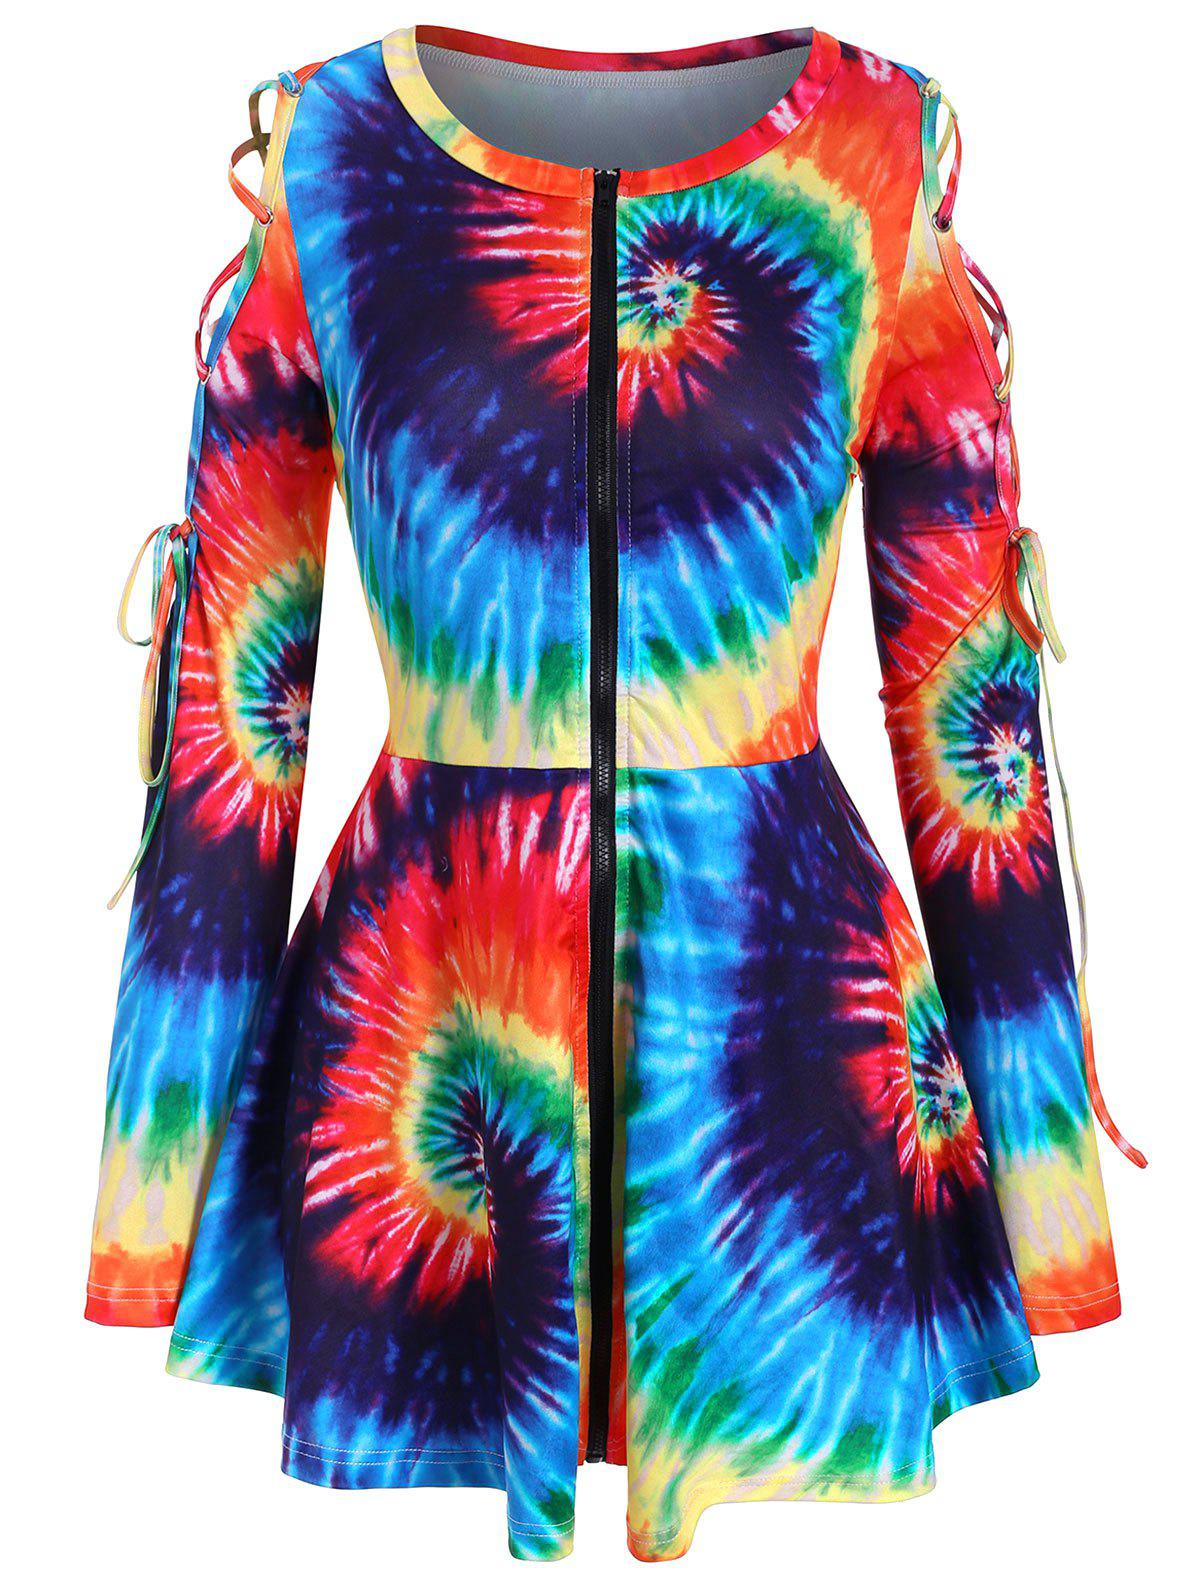 Discount Full Zip Rainbow Tie Dye Lace Up Plus Size Top